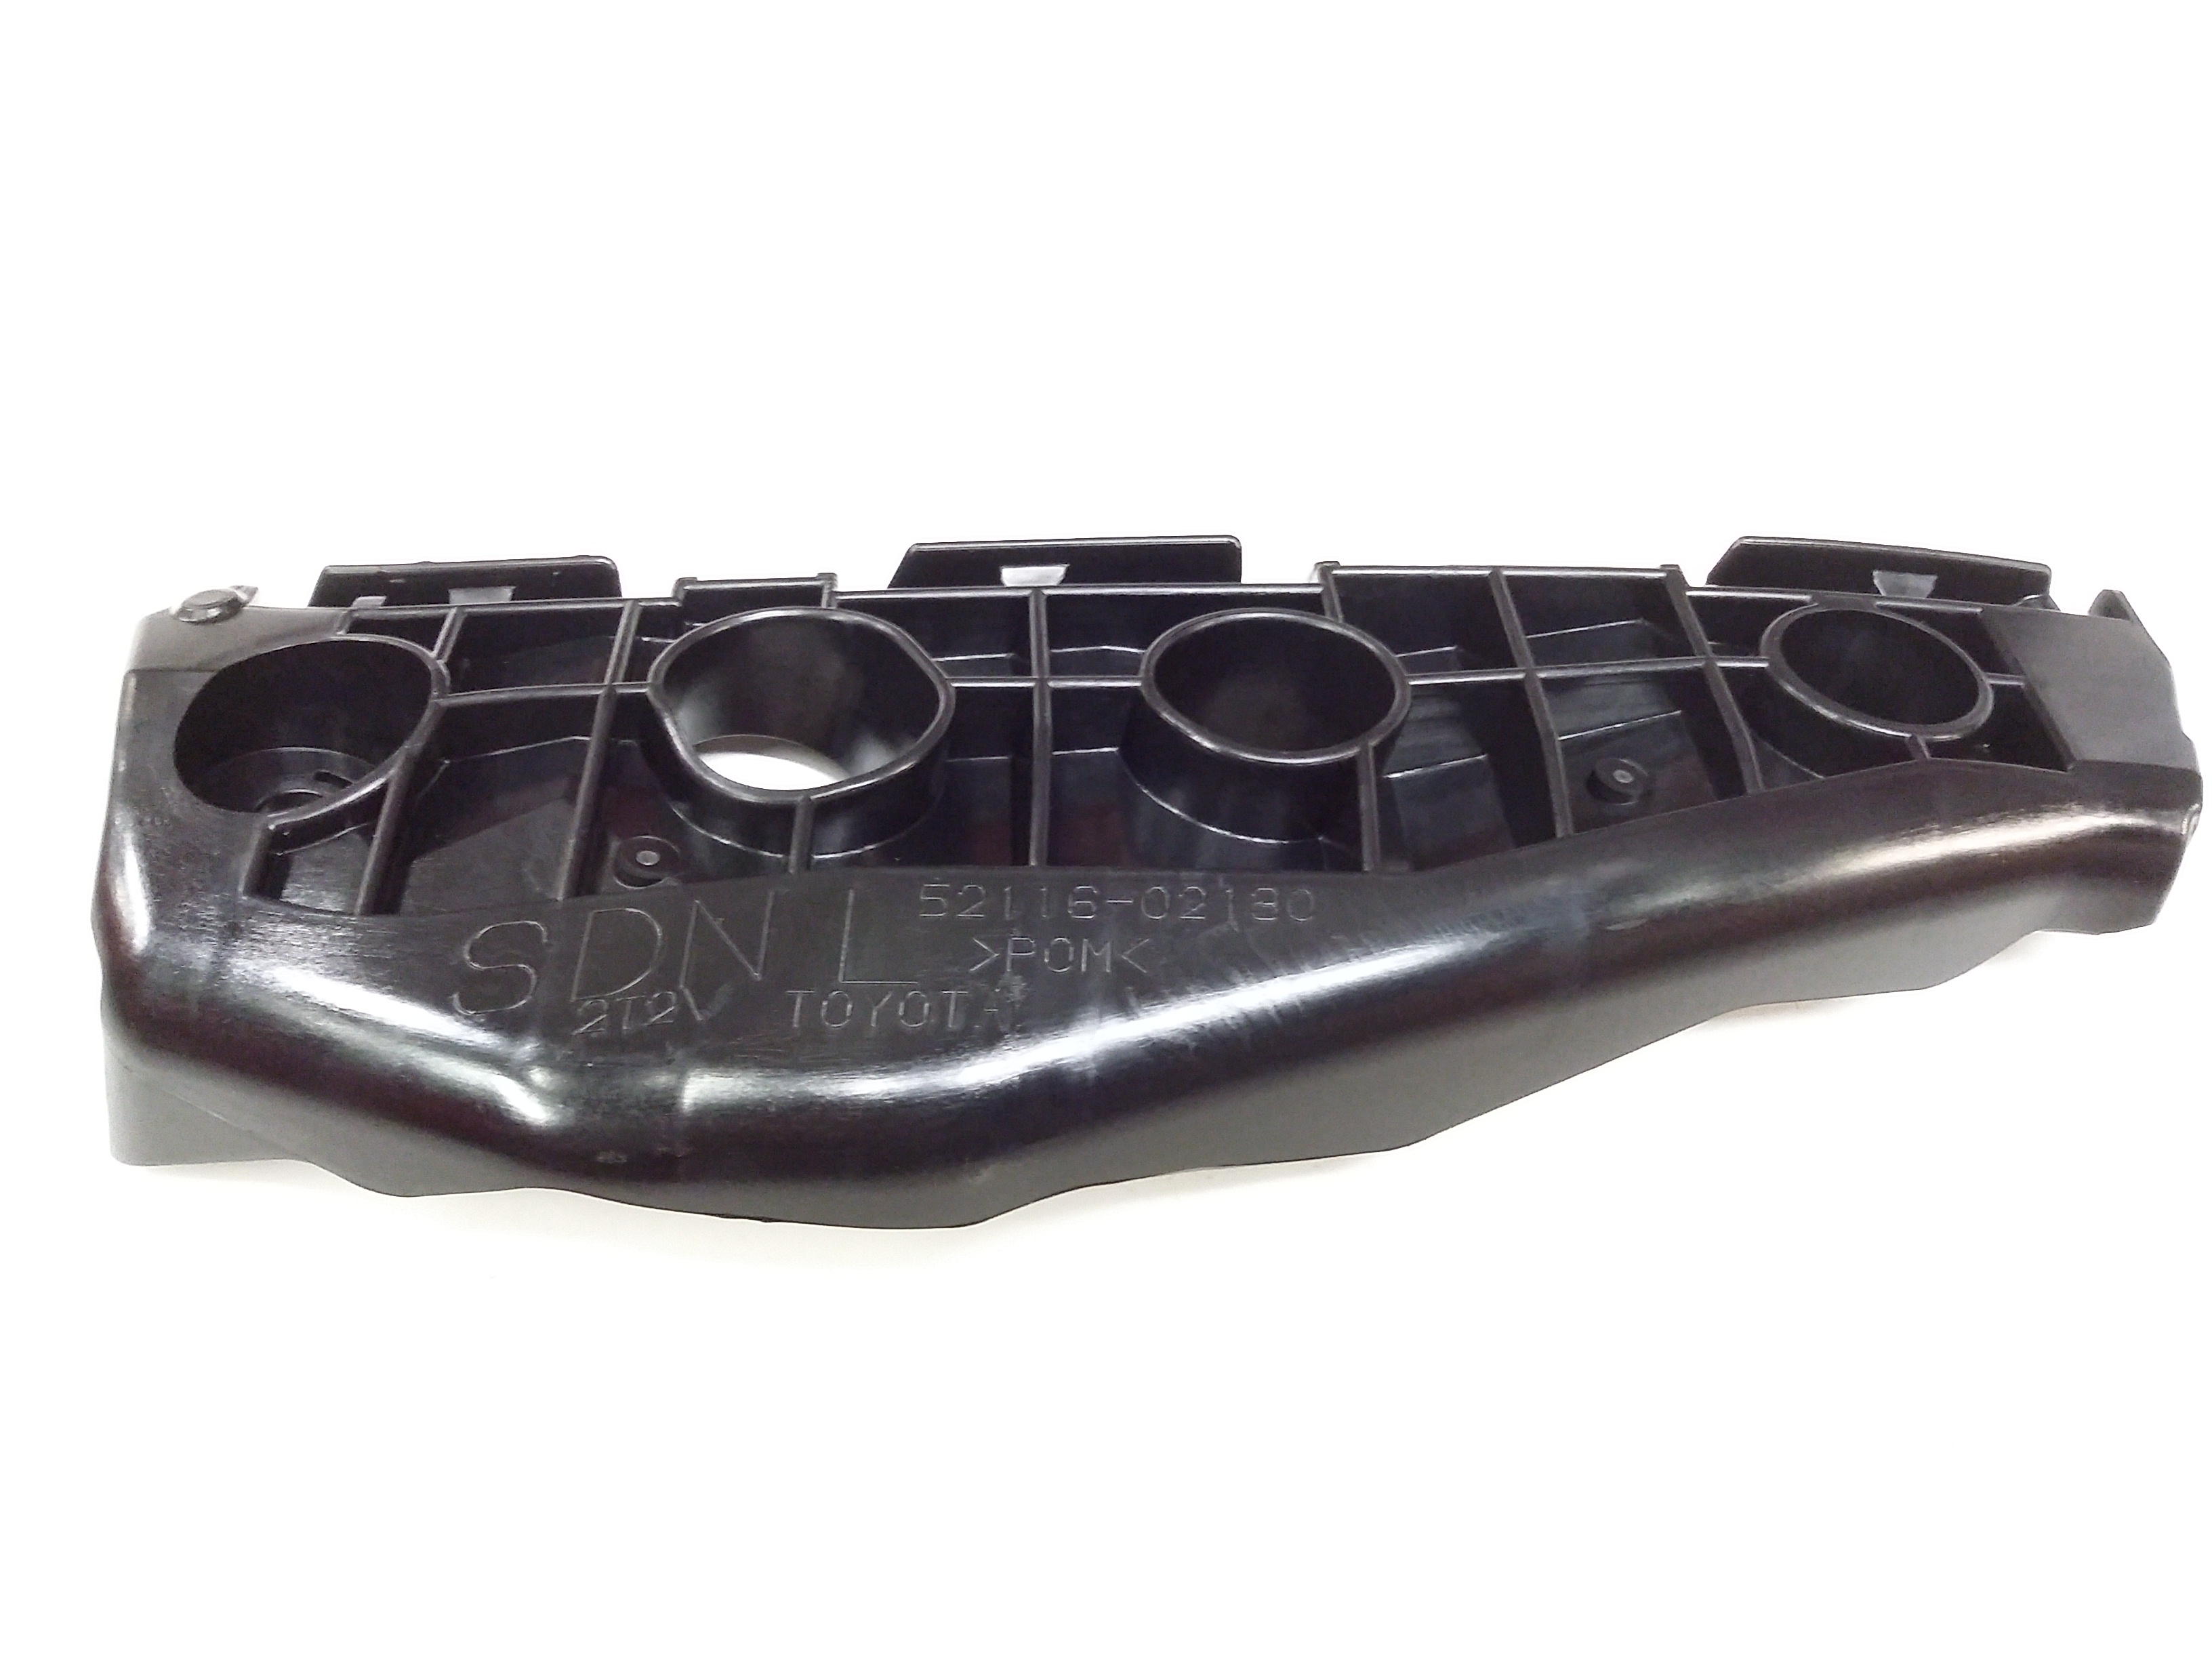 5211602130     TOYOTA    Support     front    bumper side  lh Support  fr bumper s      Toyota    Parts Overstock